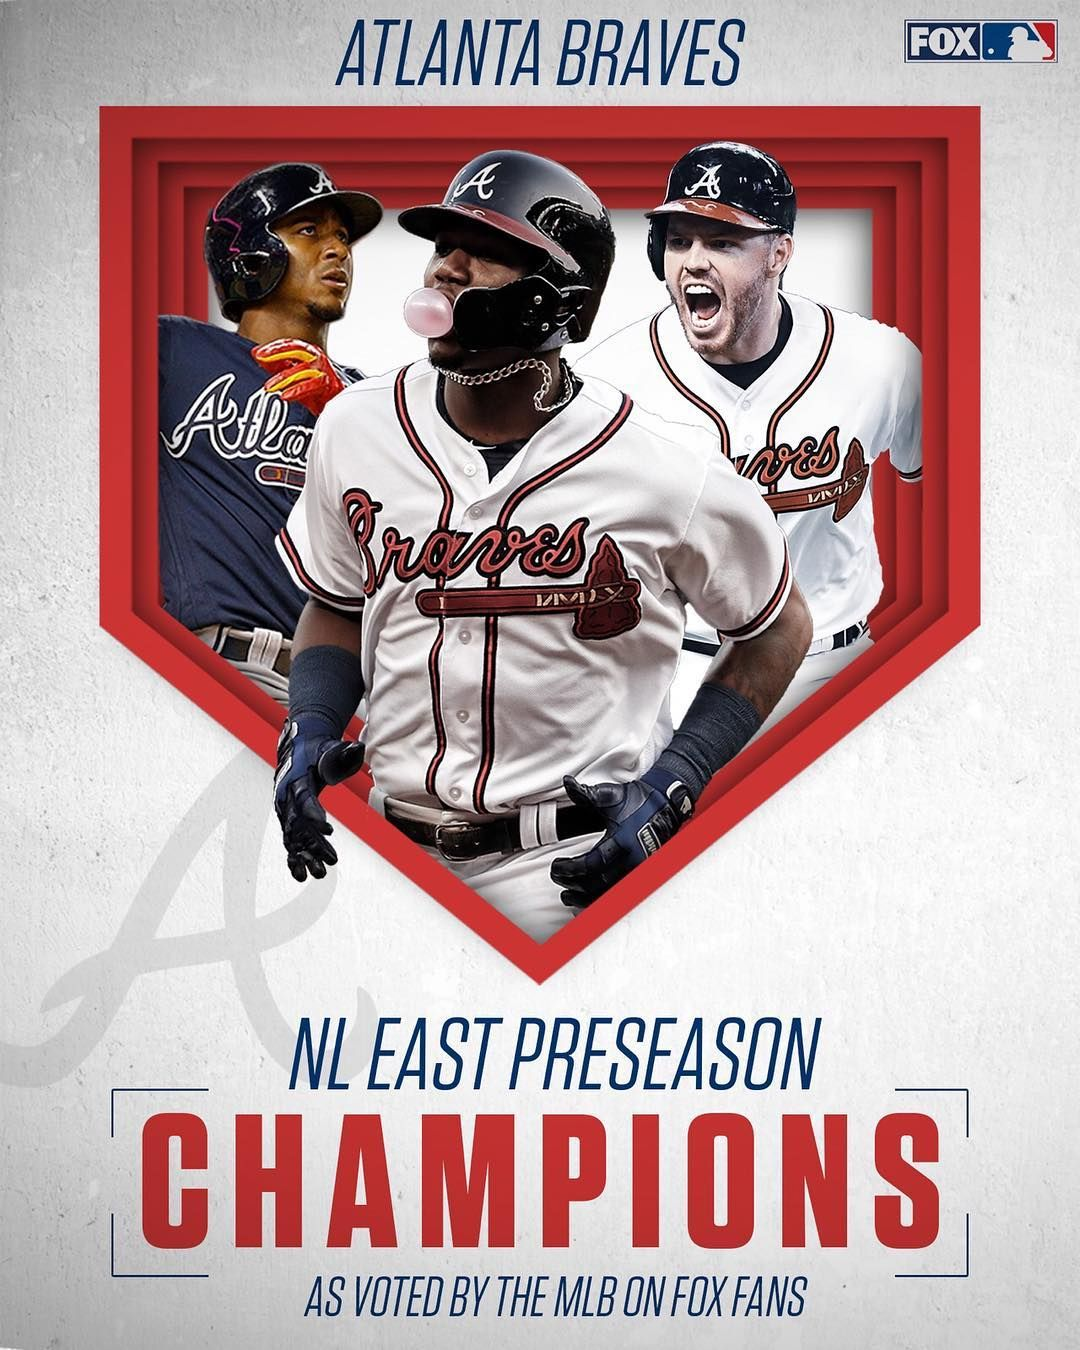 Mlb On Fox On Instagram We Asked And You Voted The Braves Will Repeat As Champions Of The Nl East In 2019 Braves Mlb Atlanta Braves